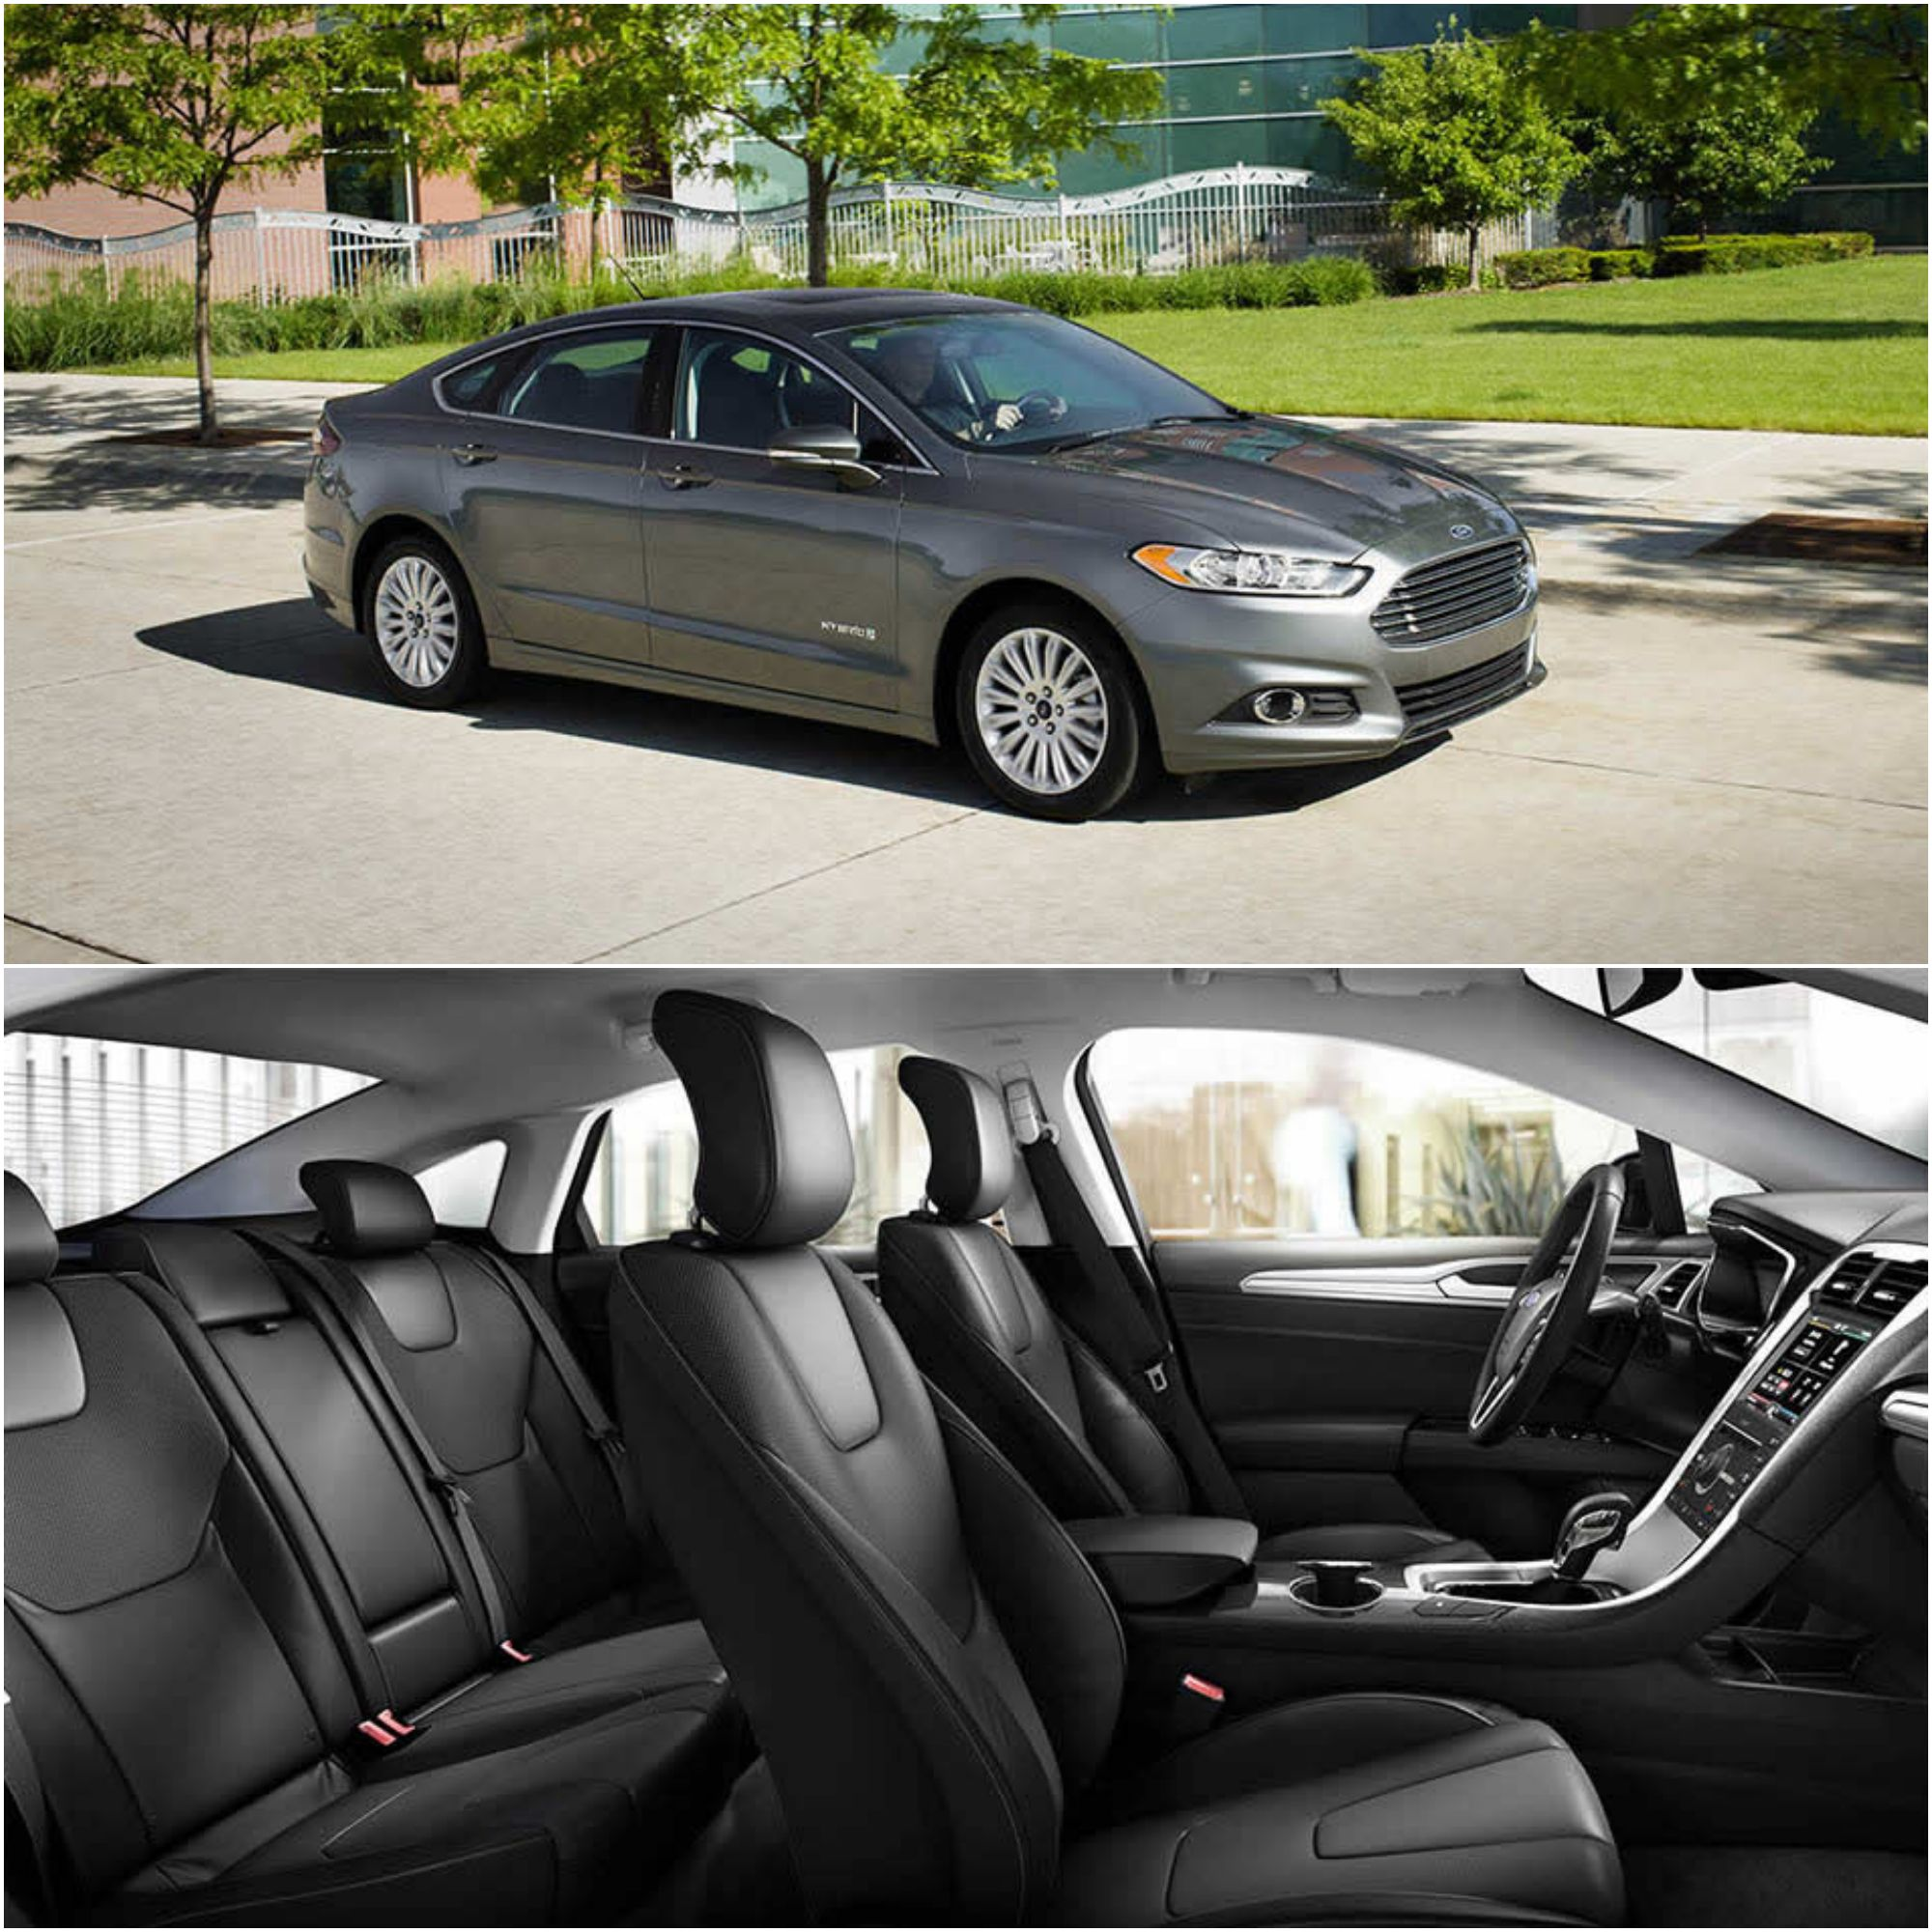 2015 ford fusion magnetic metallic best wallpaper picture review and concept car pinterest ford fusion ford and sedans